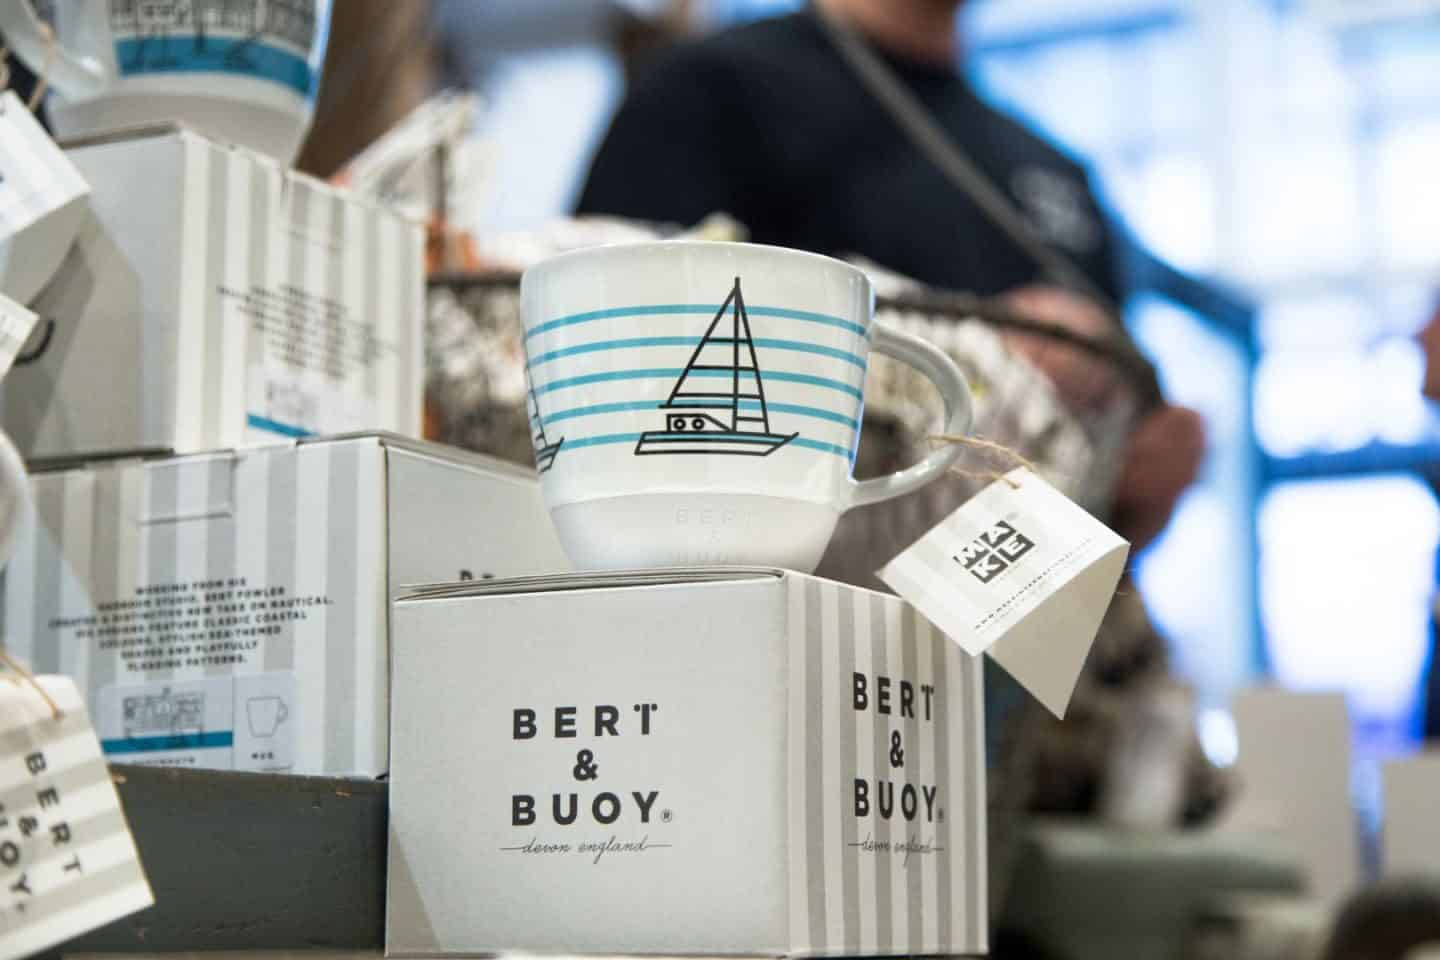 BERT & BUOY DARTMOUTH SHOP OPENING - The ceramic mugs